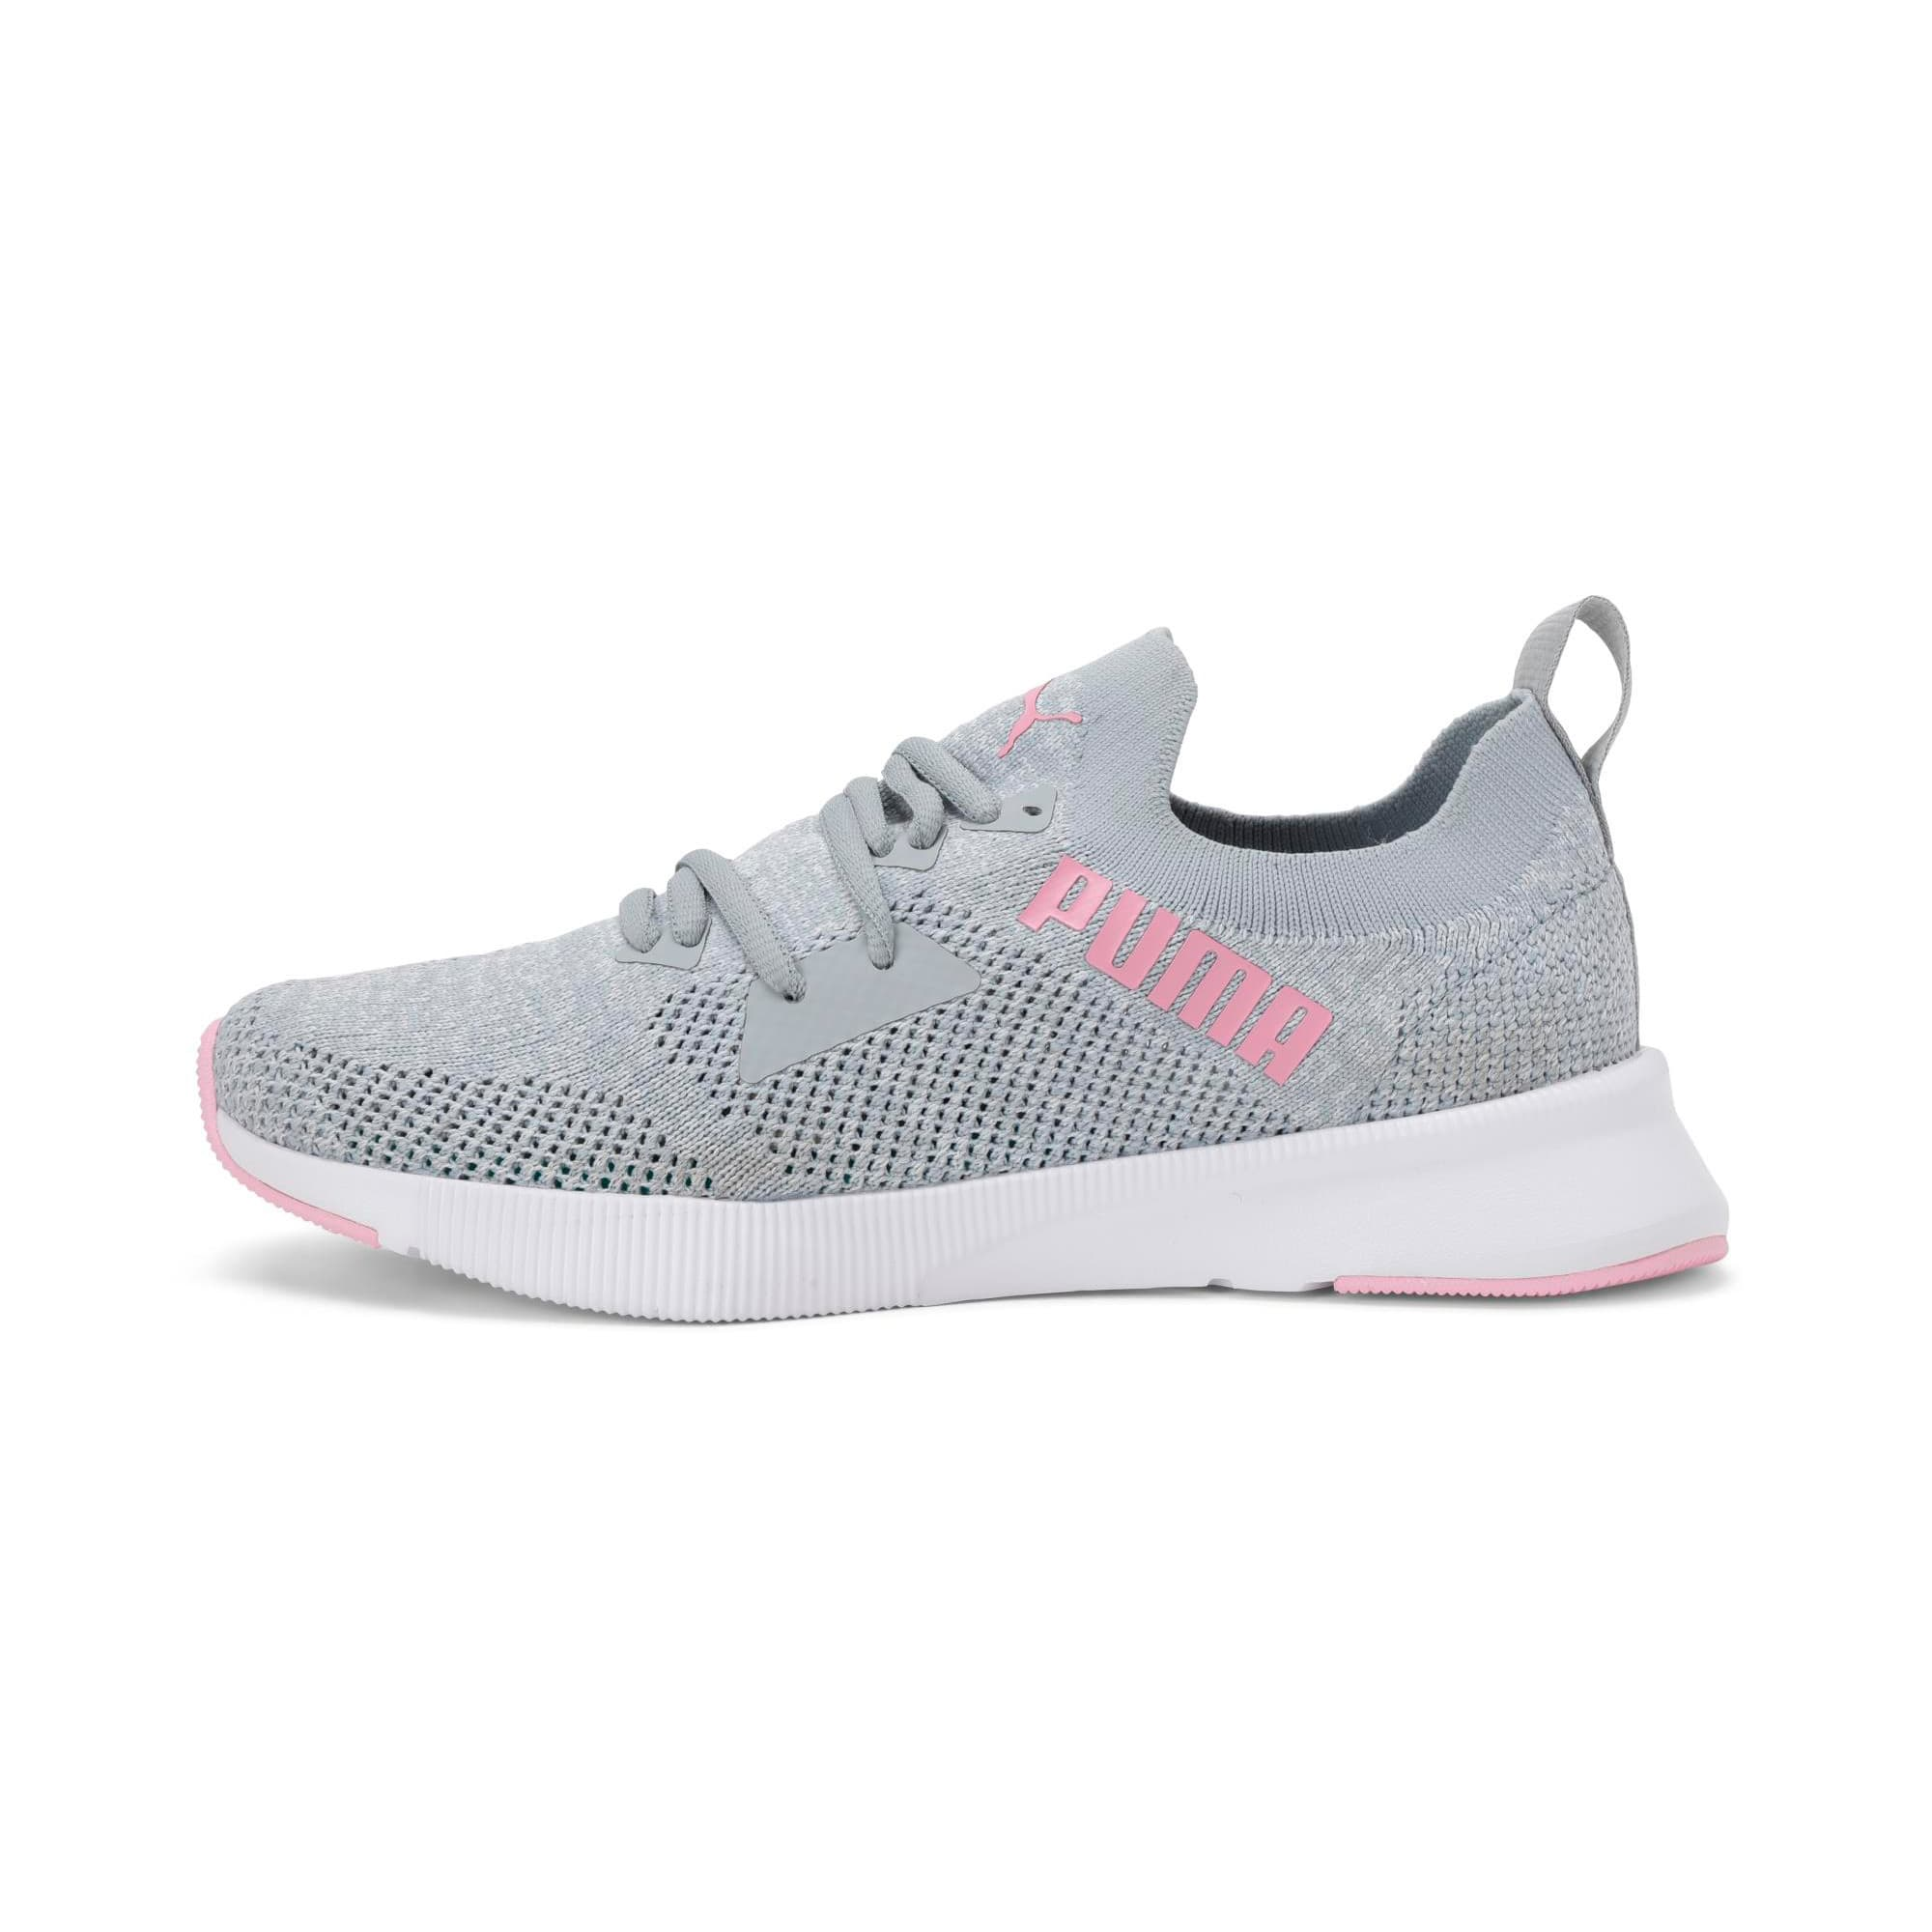 Thumbnail 1 of Flyer Women's Running Shoes, Quarry-Puma White, medium-IND